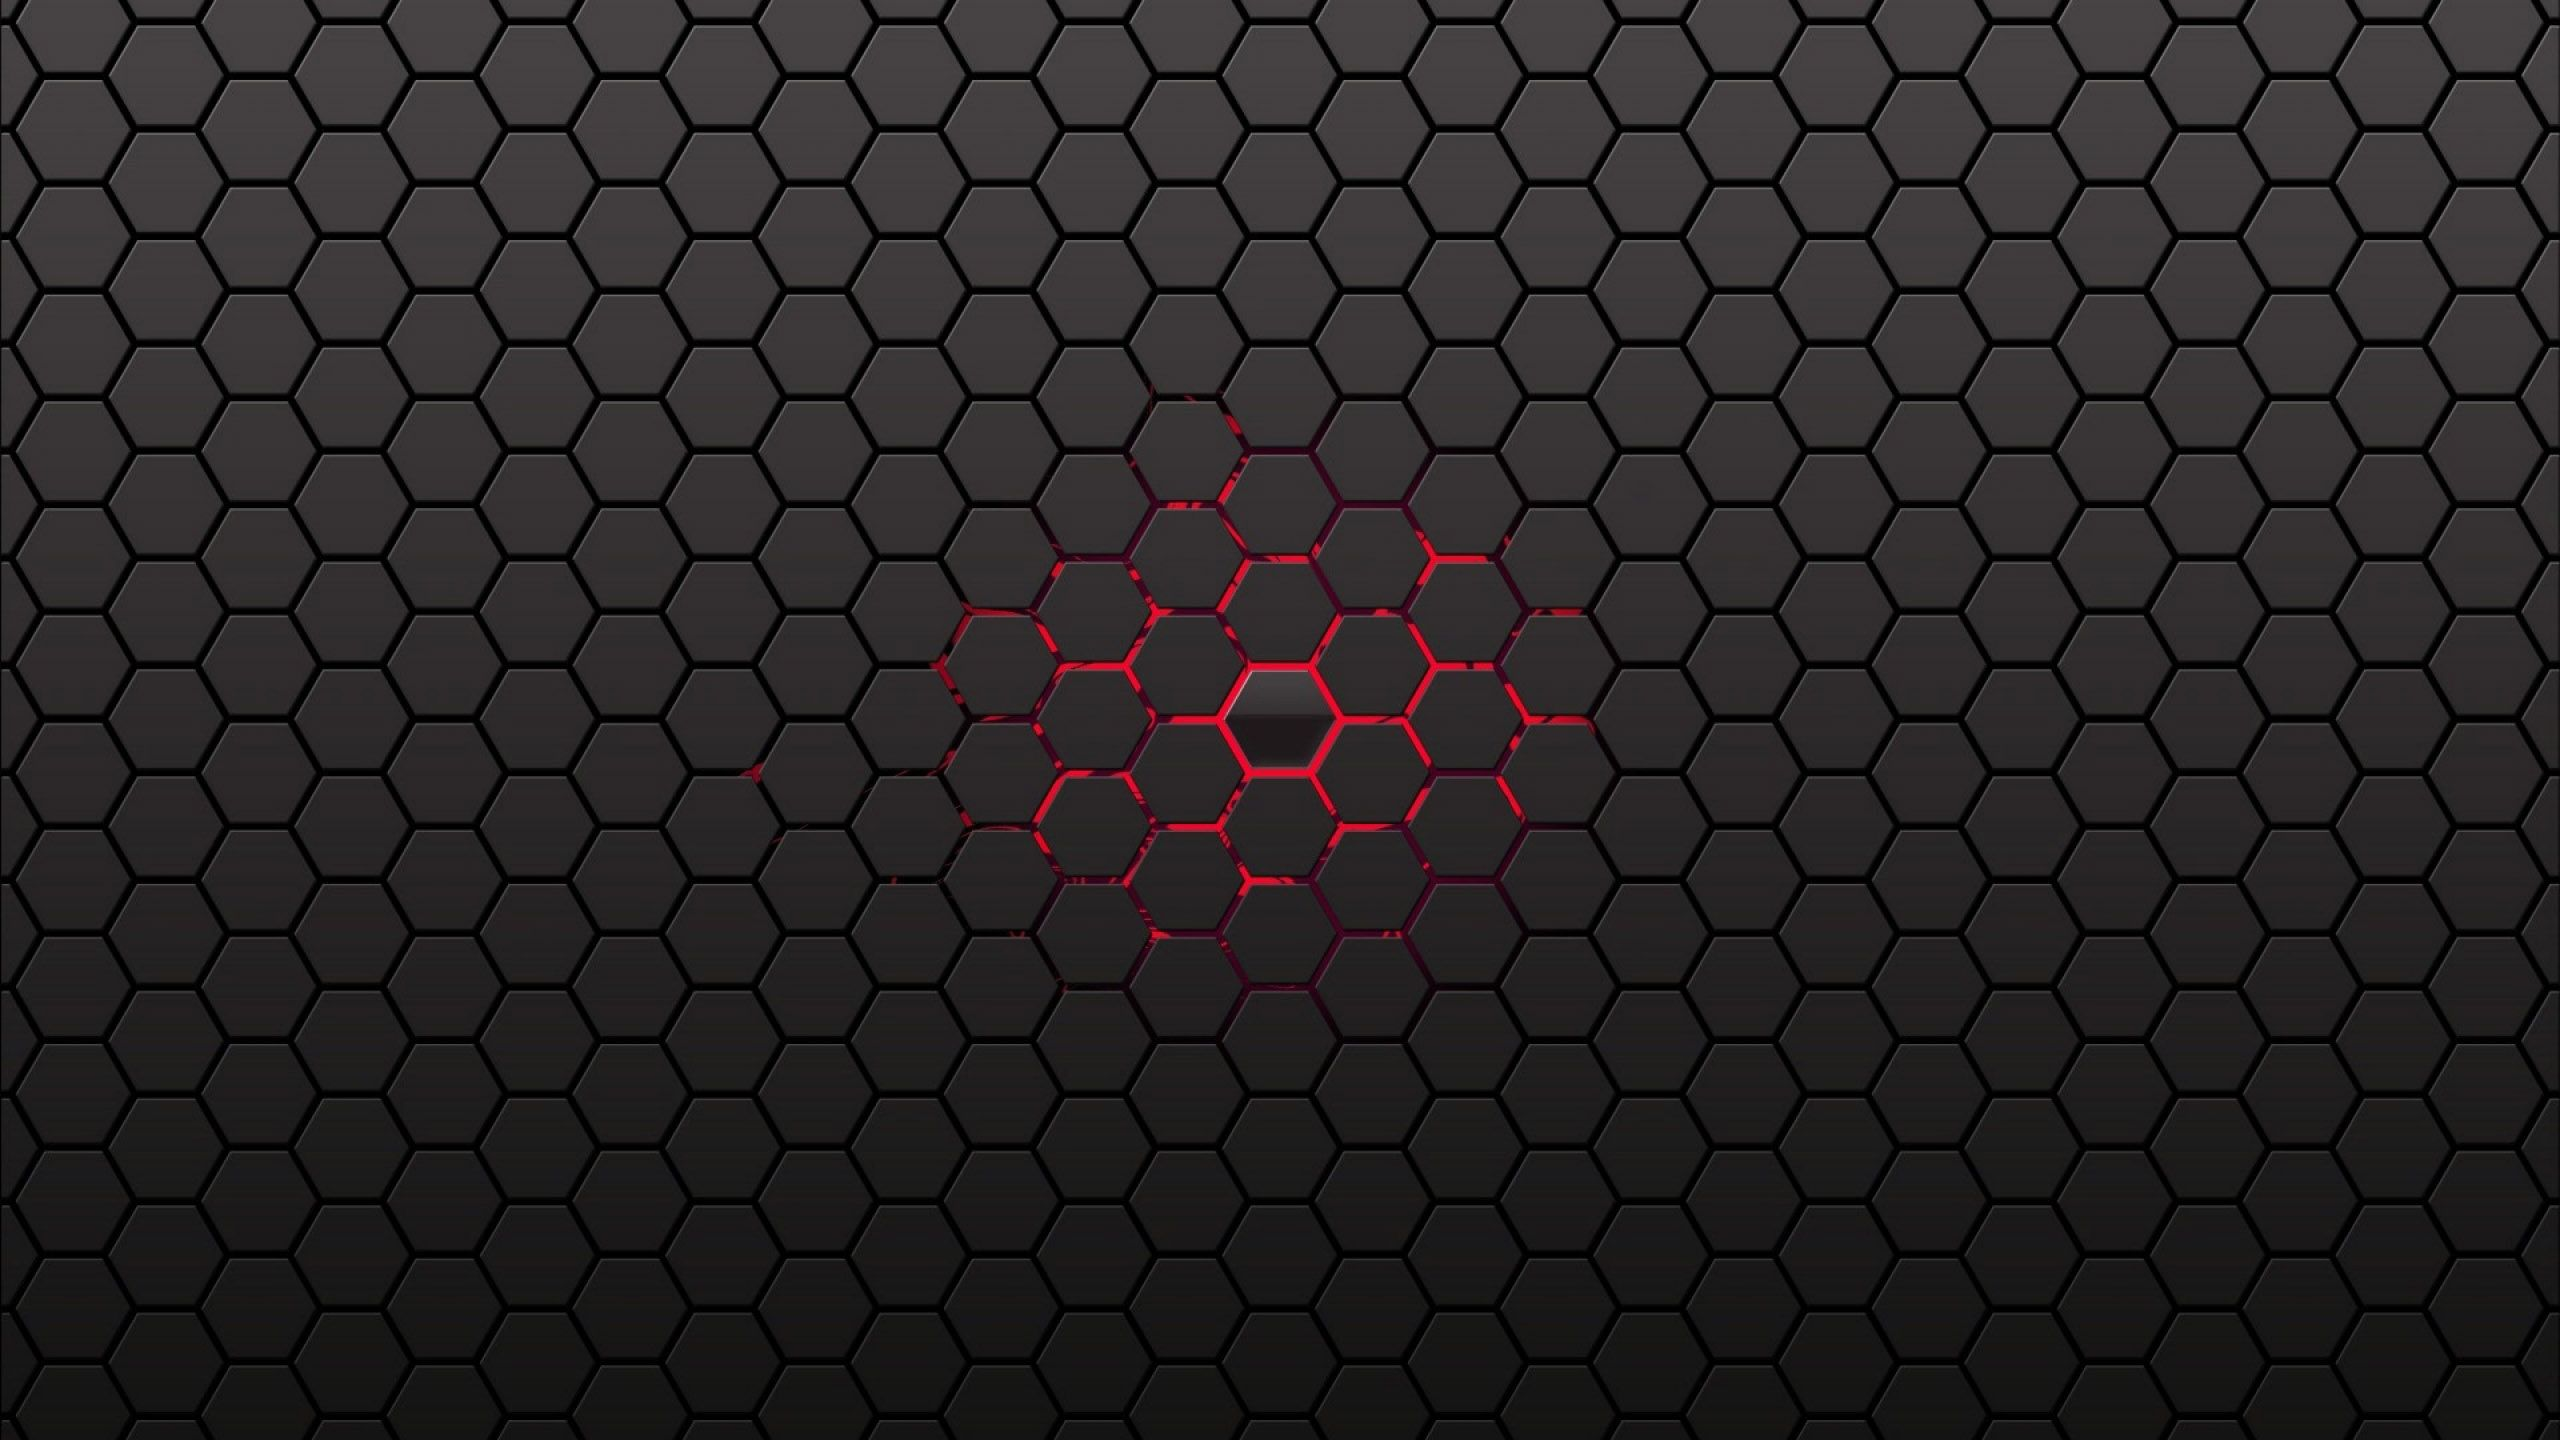 download black and red abstract wallpaper full hd 2208×1242 black